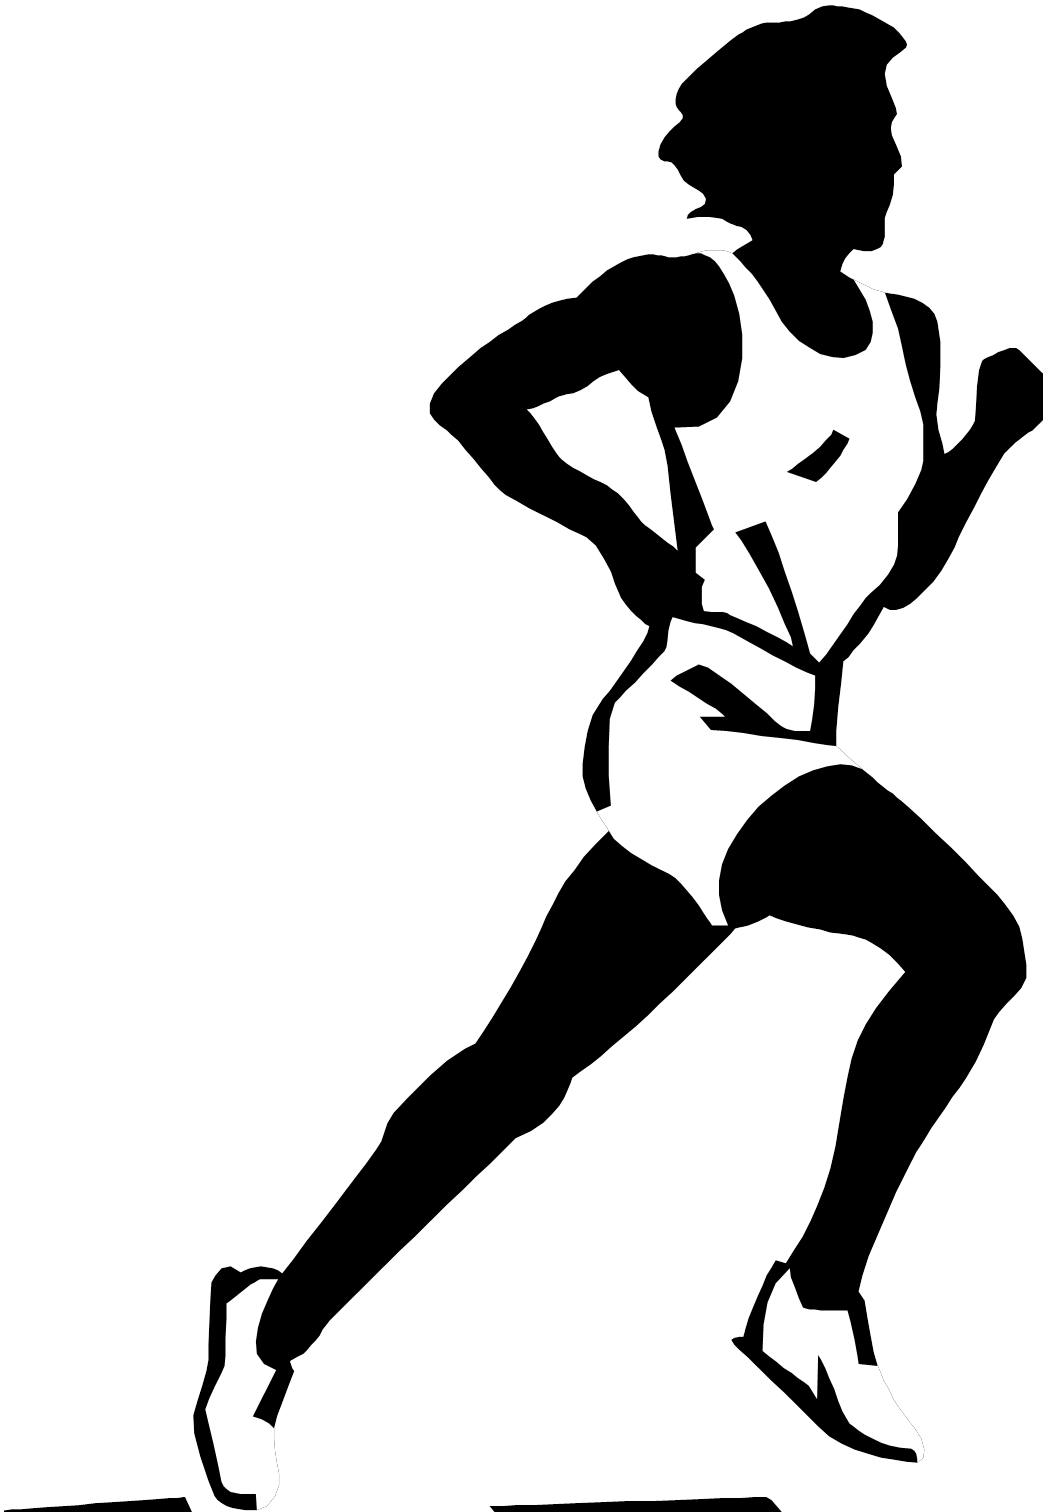 Images for cross country. Exercising clipart african american